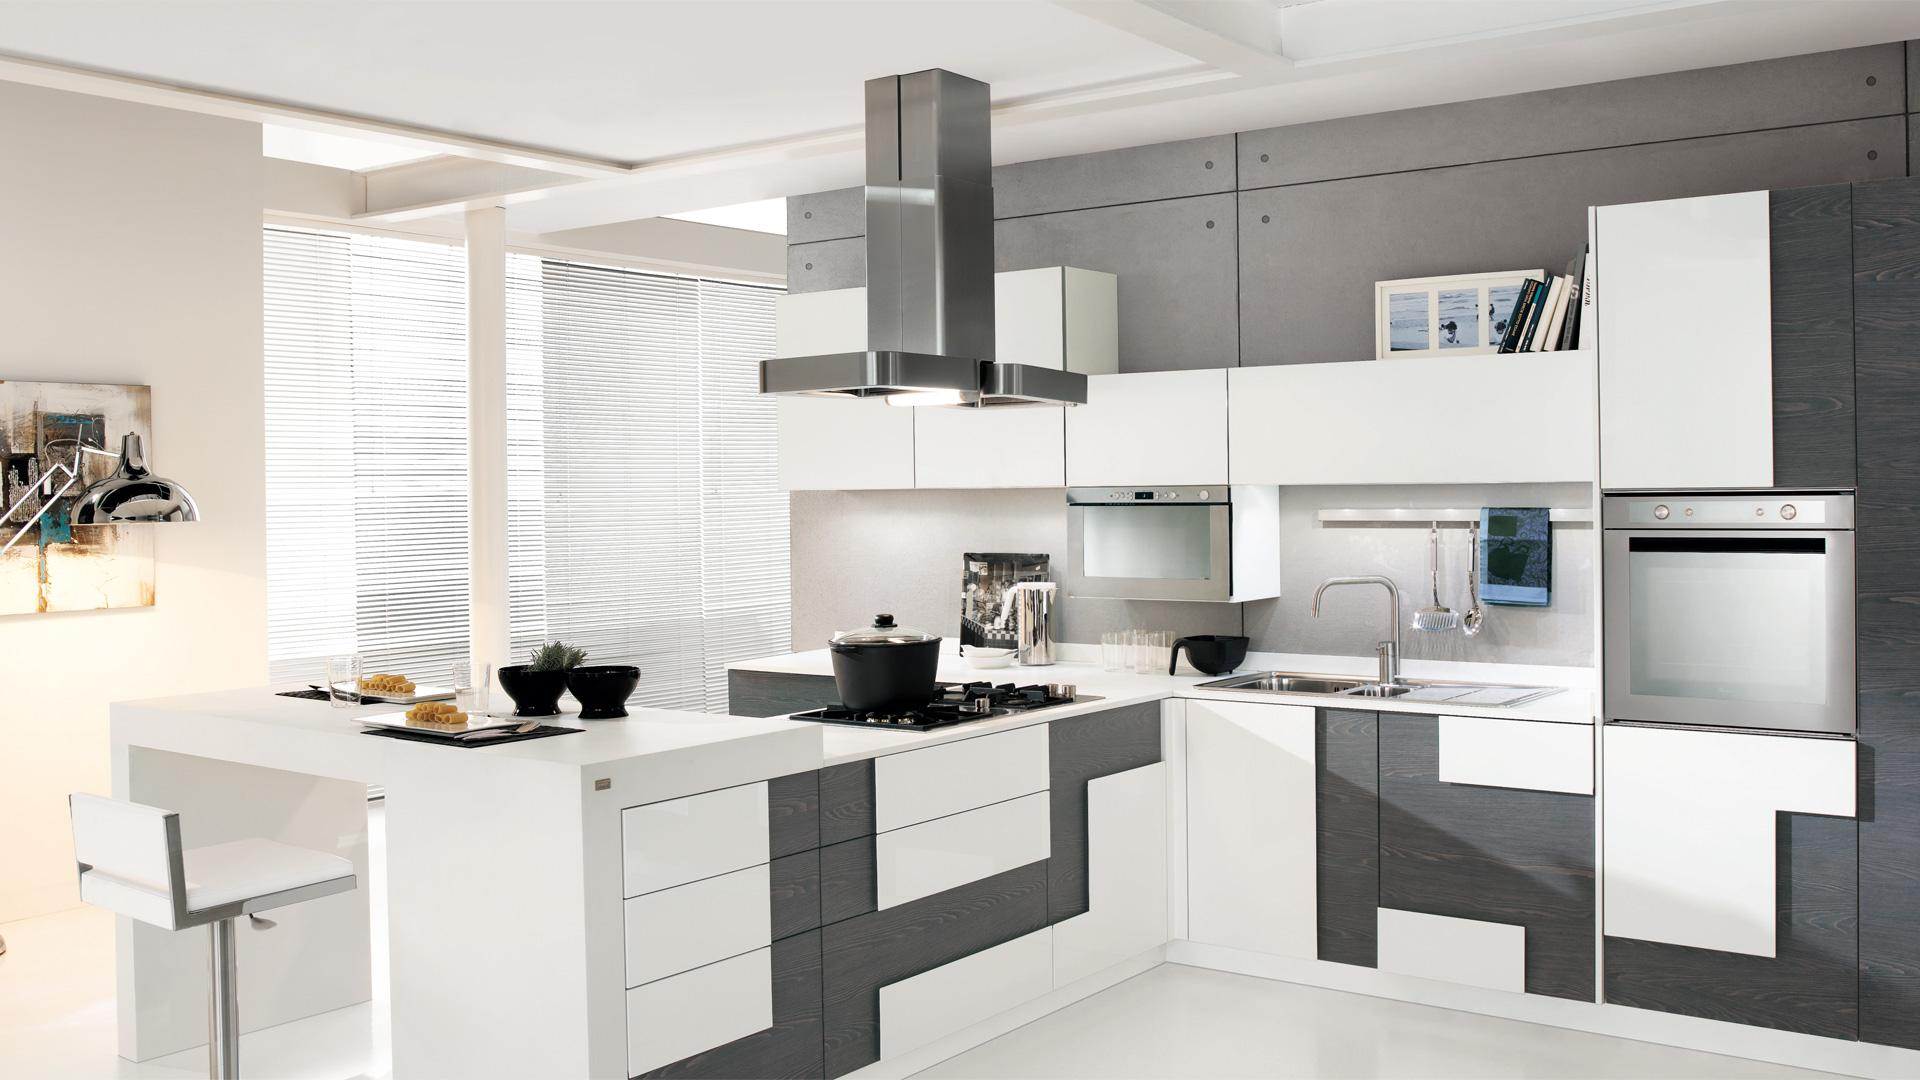 Rivenditori Cucine Lube A Roma after the success at the international fair of nice cucine